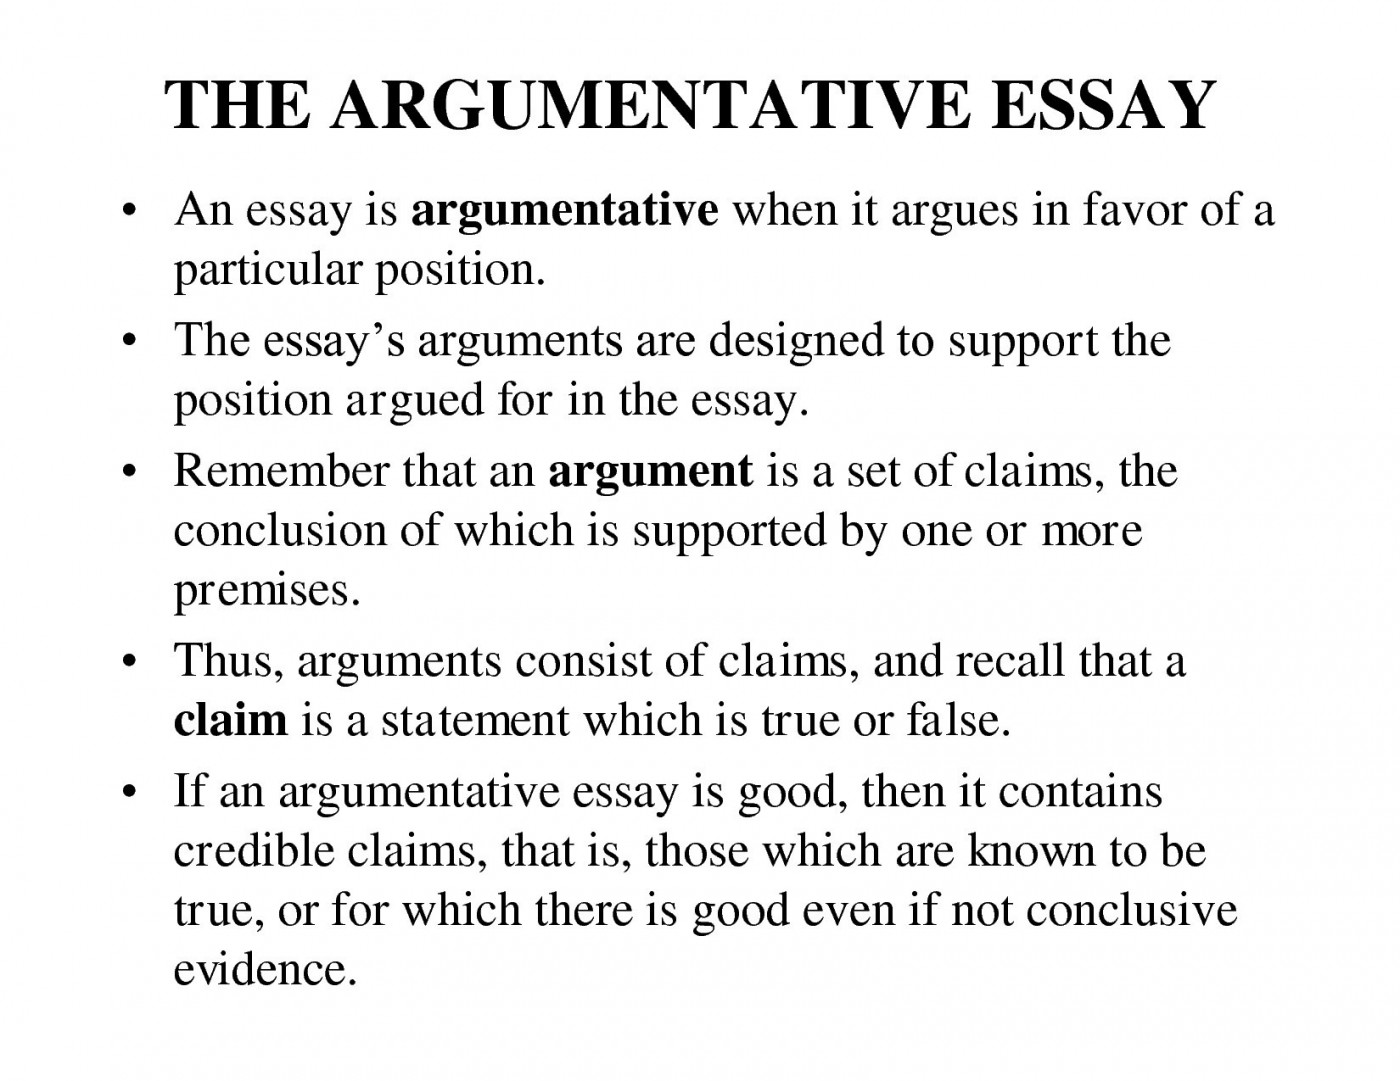 003 Argumentativessay Conclusionxamplexamples And Forms What Is An Definition Outline Printables Corner With Rega Powerpoint Ppt Its Parts Topics Pdf Brainly Define Fantastic Argumentative Essay Format & Examples Claim Dictionary 1400